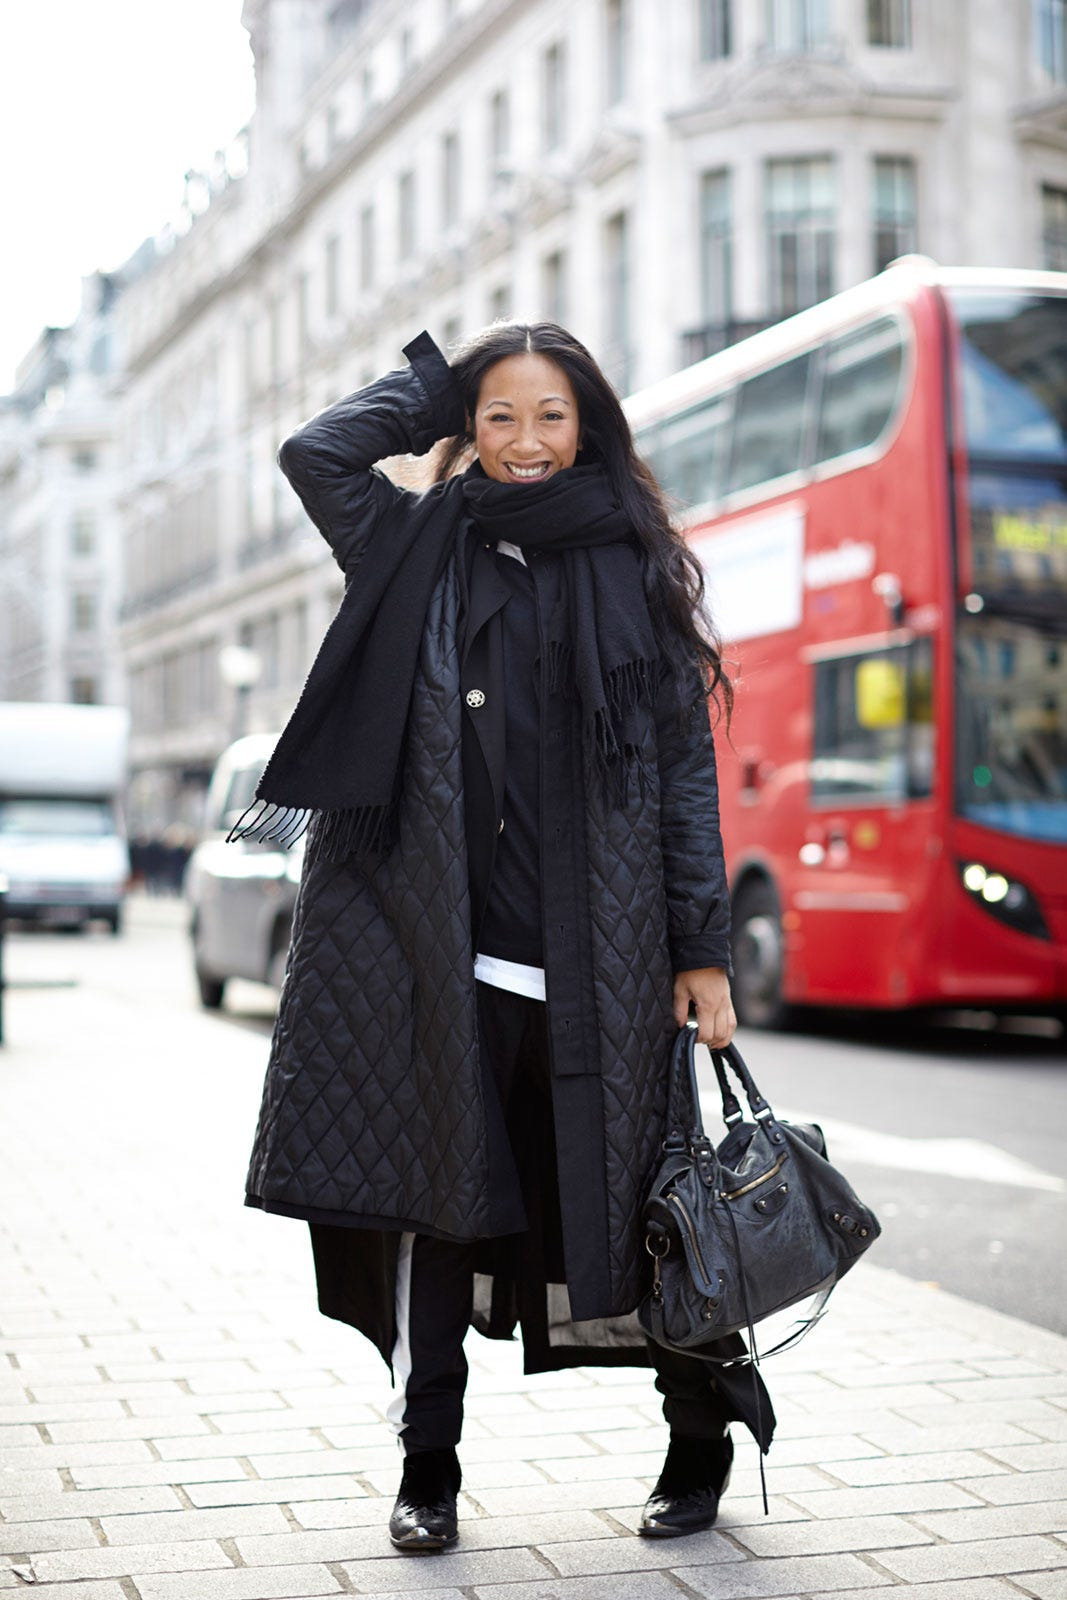 3cd13e6186c Winter Street Style - Cold-Weather Outfits